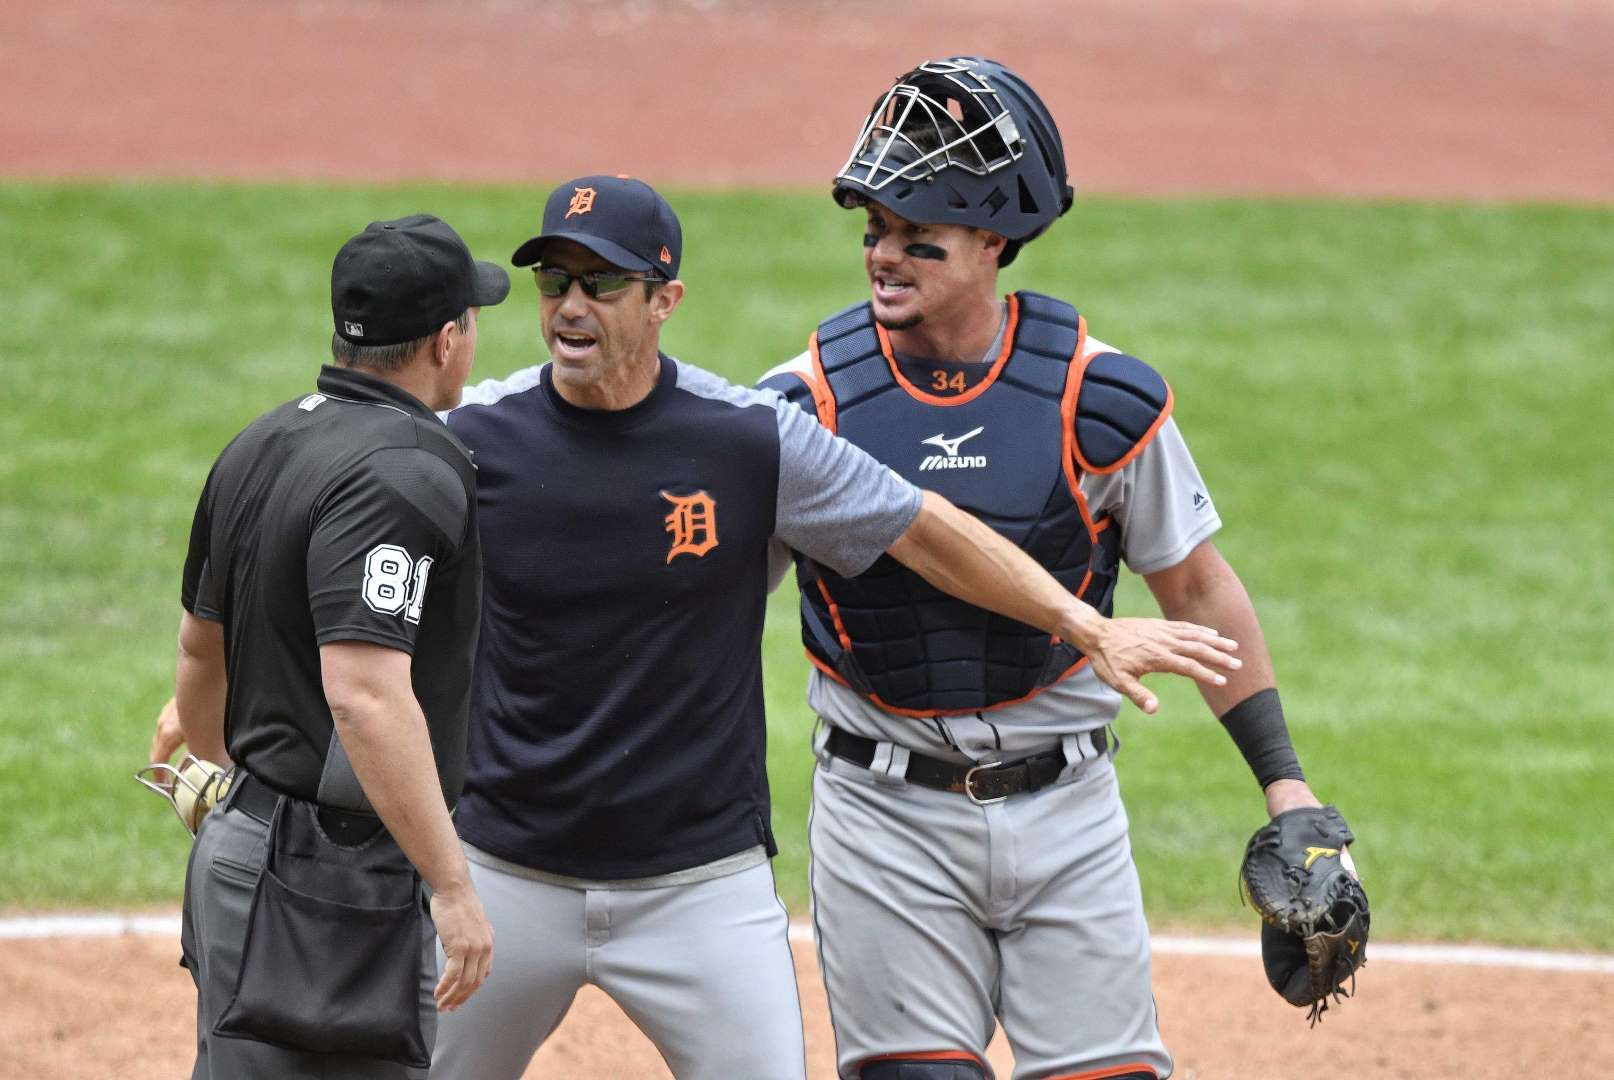 Mlb Player Manager Ejections In 2017 Sept 13 Tigers Manager Brad Ausmus Stands Between Home Plate Umpire Quinn Wolcott And Catcher J Mlb Players Mlb Players